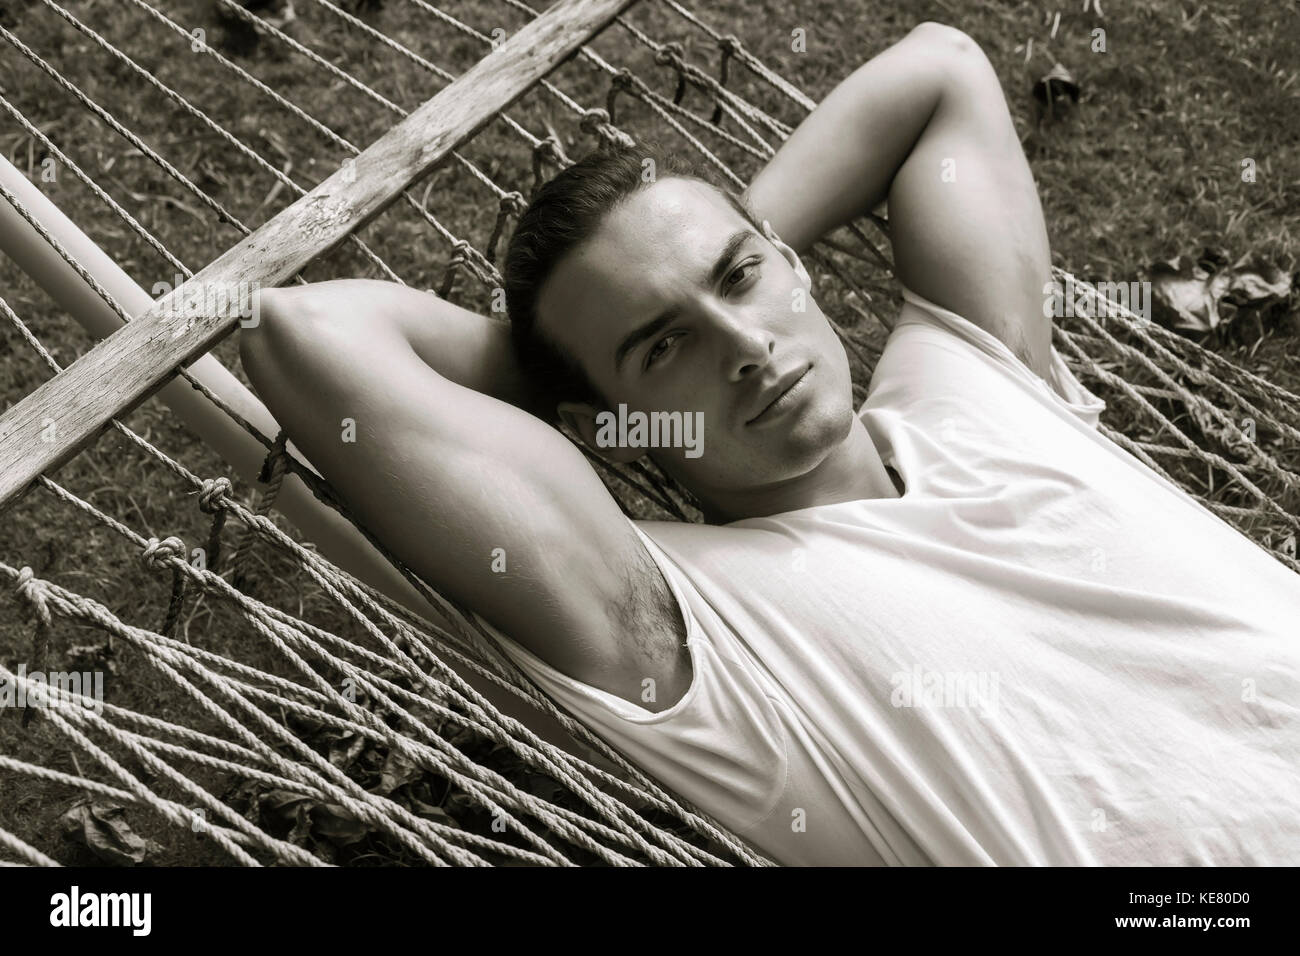 A young man lying on a hammock looking at the camera; Hawaii, United States of America Stock Photo